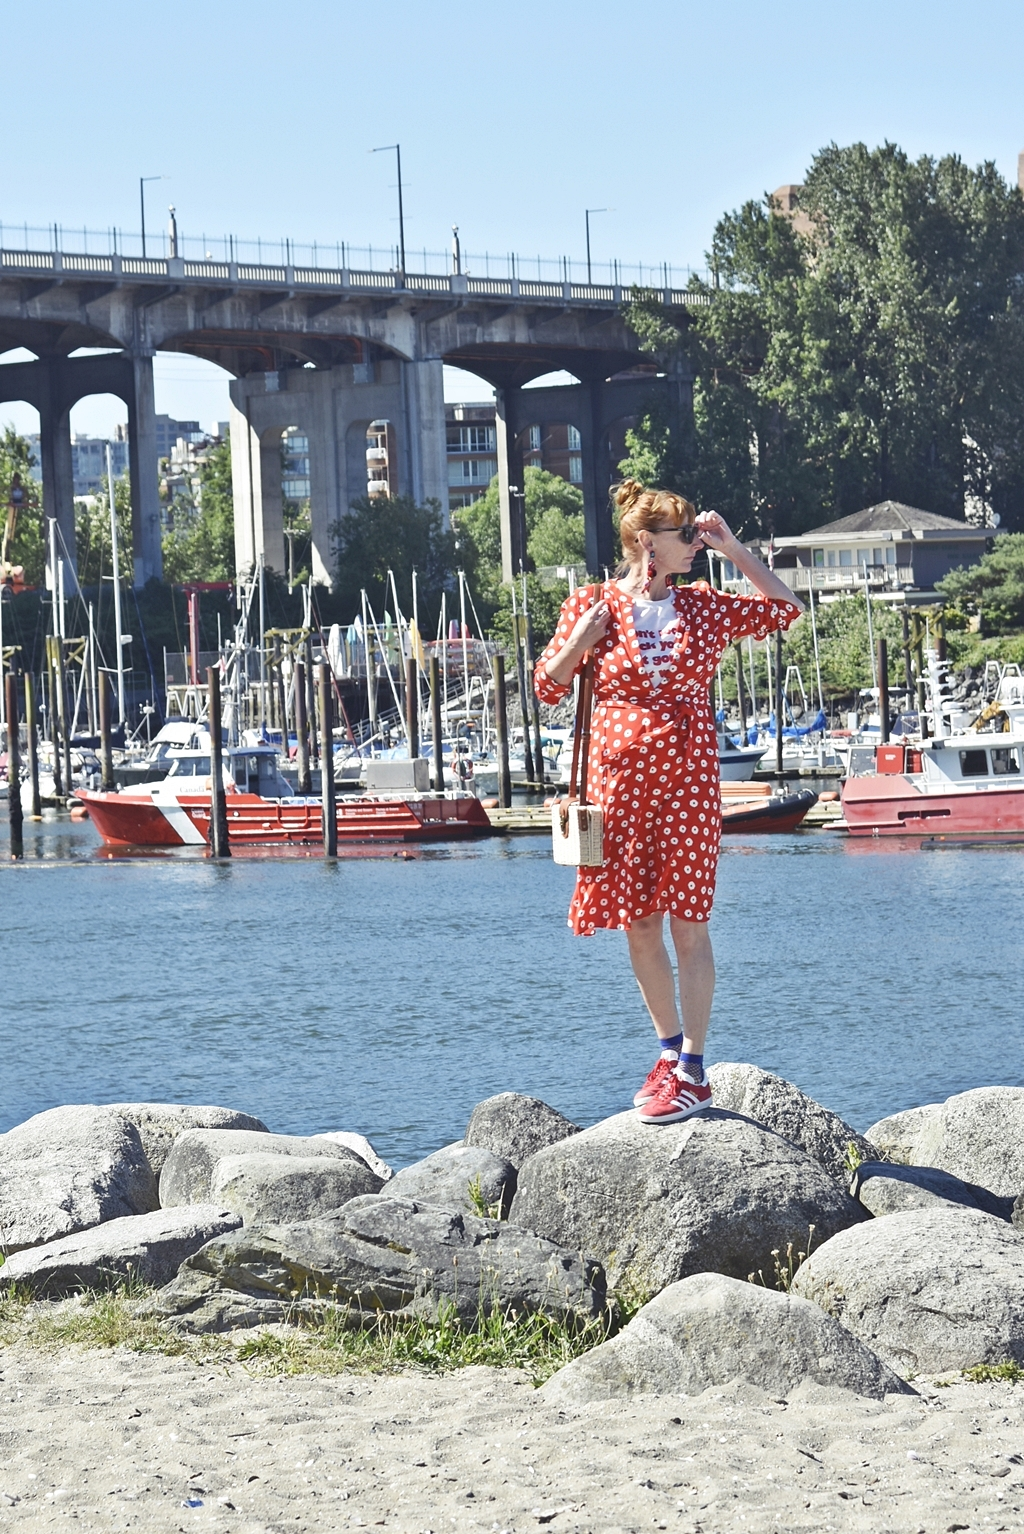 Outfit of the Day - Unsere Radtour in Vancouver - Granville Island Public Market & Stanley Park Seawall - West Kanada Roadtrip | Travel luziapimpinella.com